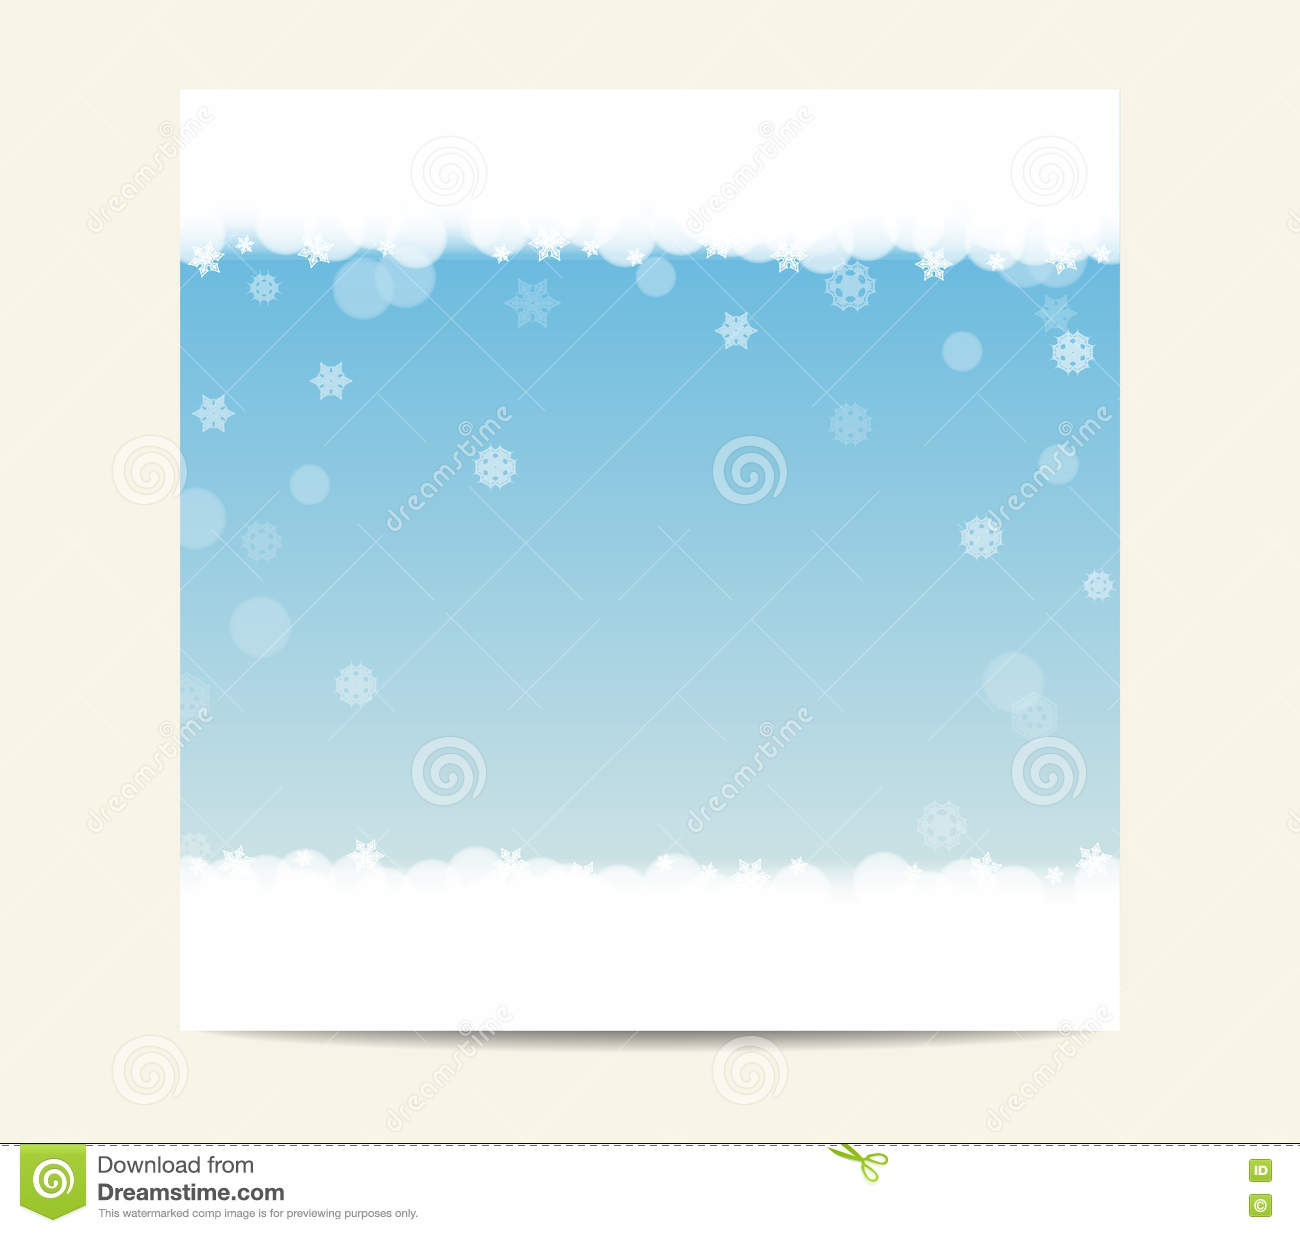 flyer template a winter background stock vector image 48024380 winter blue banner template background snowflakes royalty stock photos